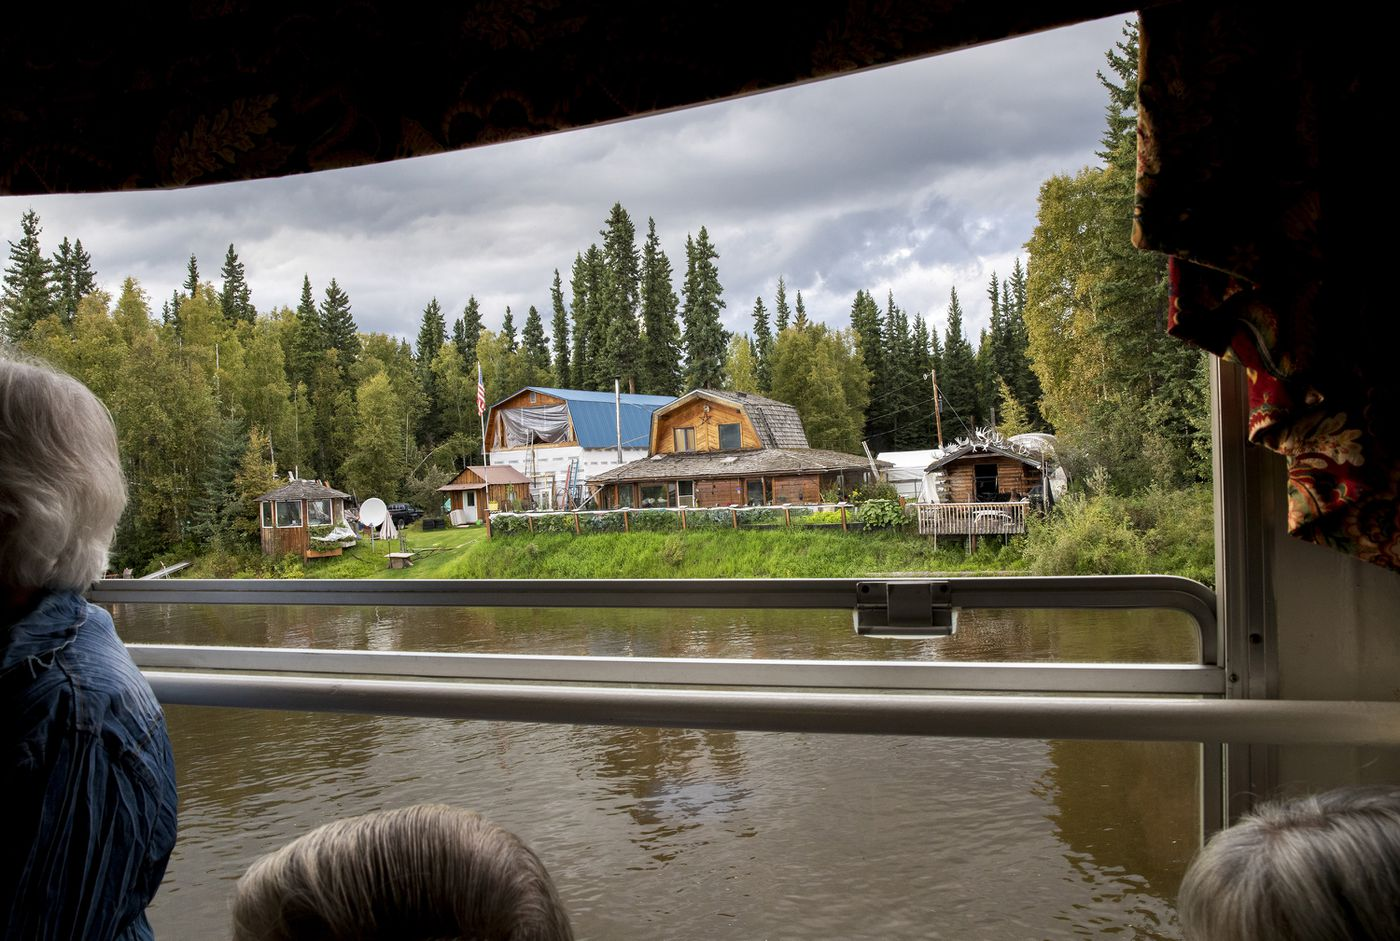 Homes are seen along the Chena River waterfront during a fundraiser cruise for John Sturgeon in Fairbanks. Photo for the Washington Post by Kate Wool